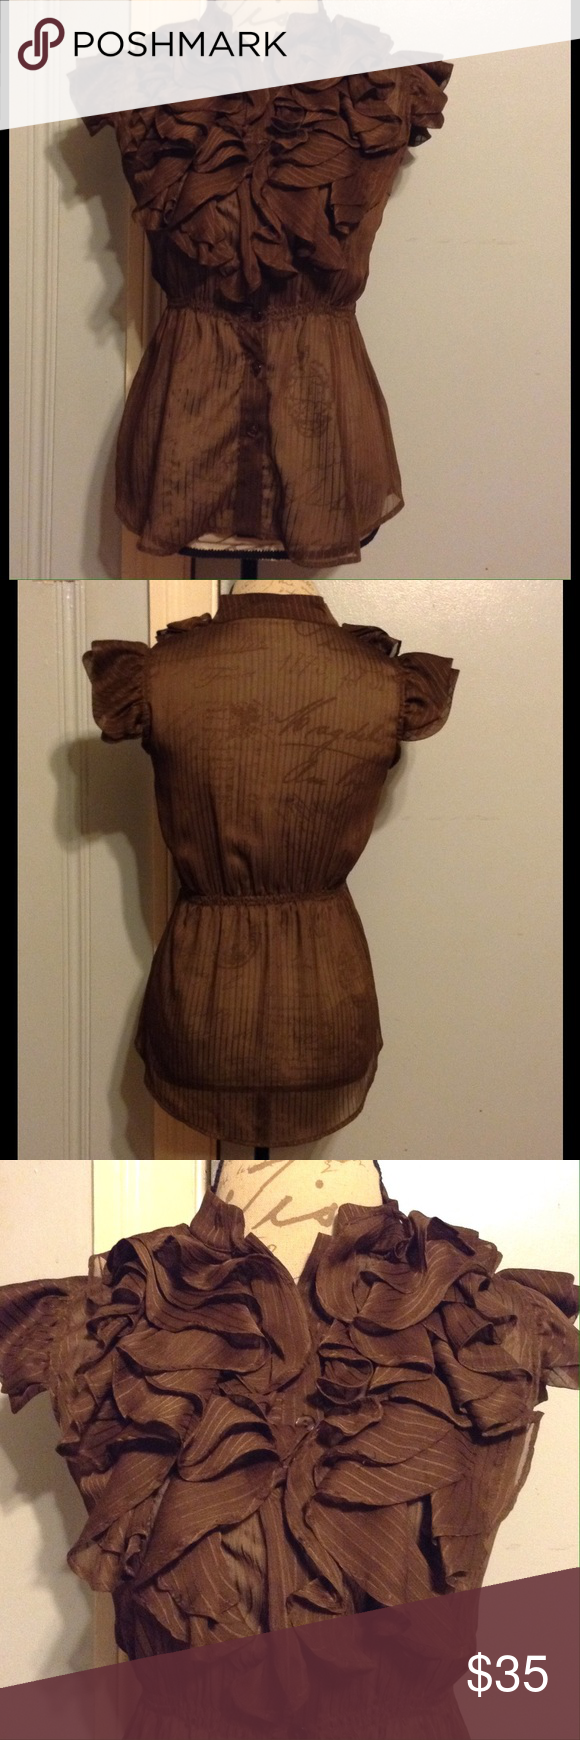 "SOPHIE & KATE Sheer Pecan Brown Striped Ruffle Top SIZE 19.5"" Sides. 21.5"" Front Length. 23"" Back Length. Short Double Ruffle Sleeves. Center Button Down Front. Multi Layered Ruffles Adorn Front. Elastic Waist. Beautiful Sheer Pecan Brown Top w/ Shiny Pin Stripes. Mini Collar. EUC WORN ONCE Sophie & Kate Tops Blouses"